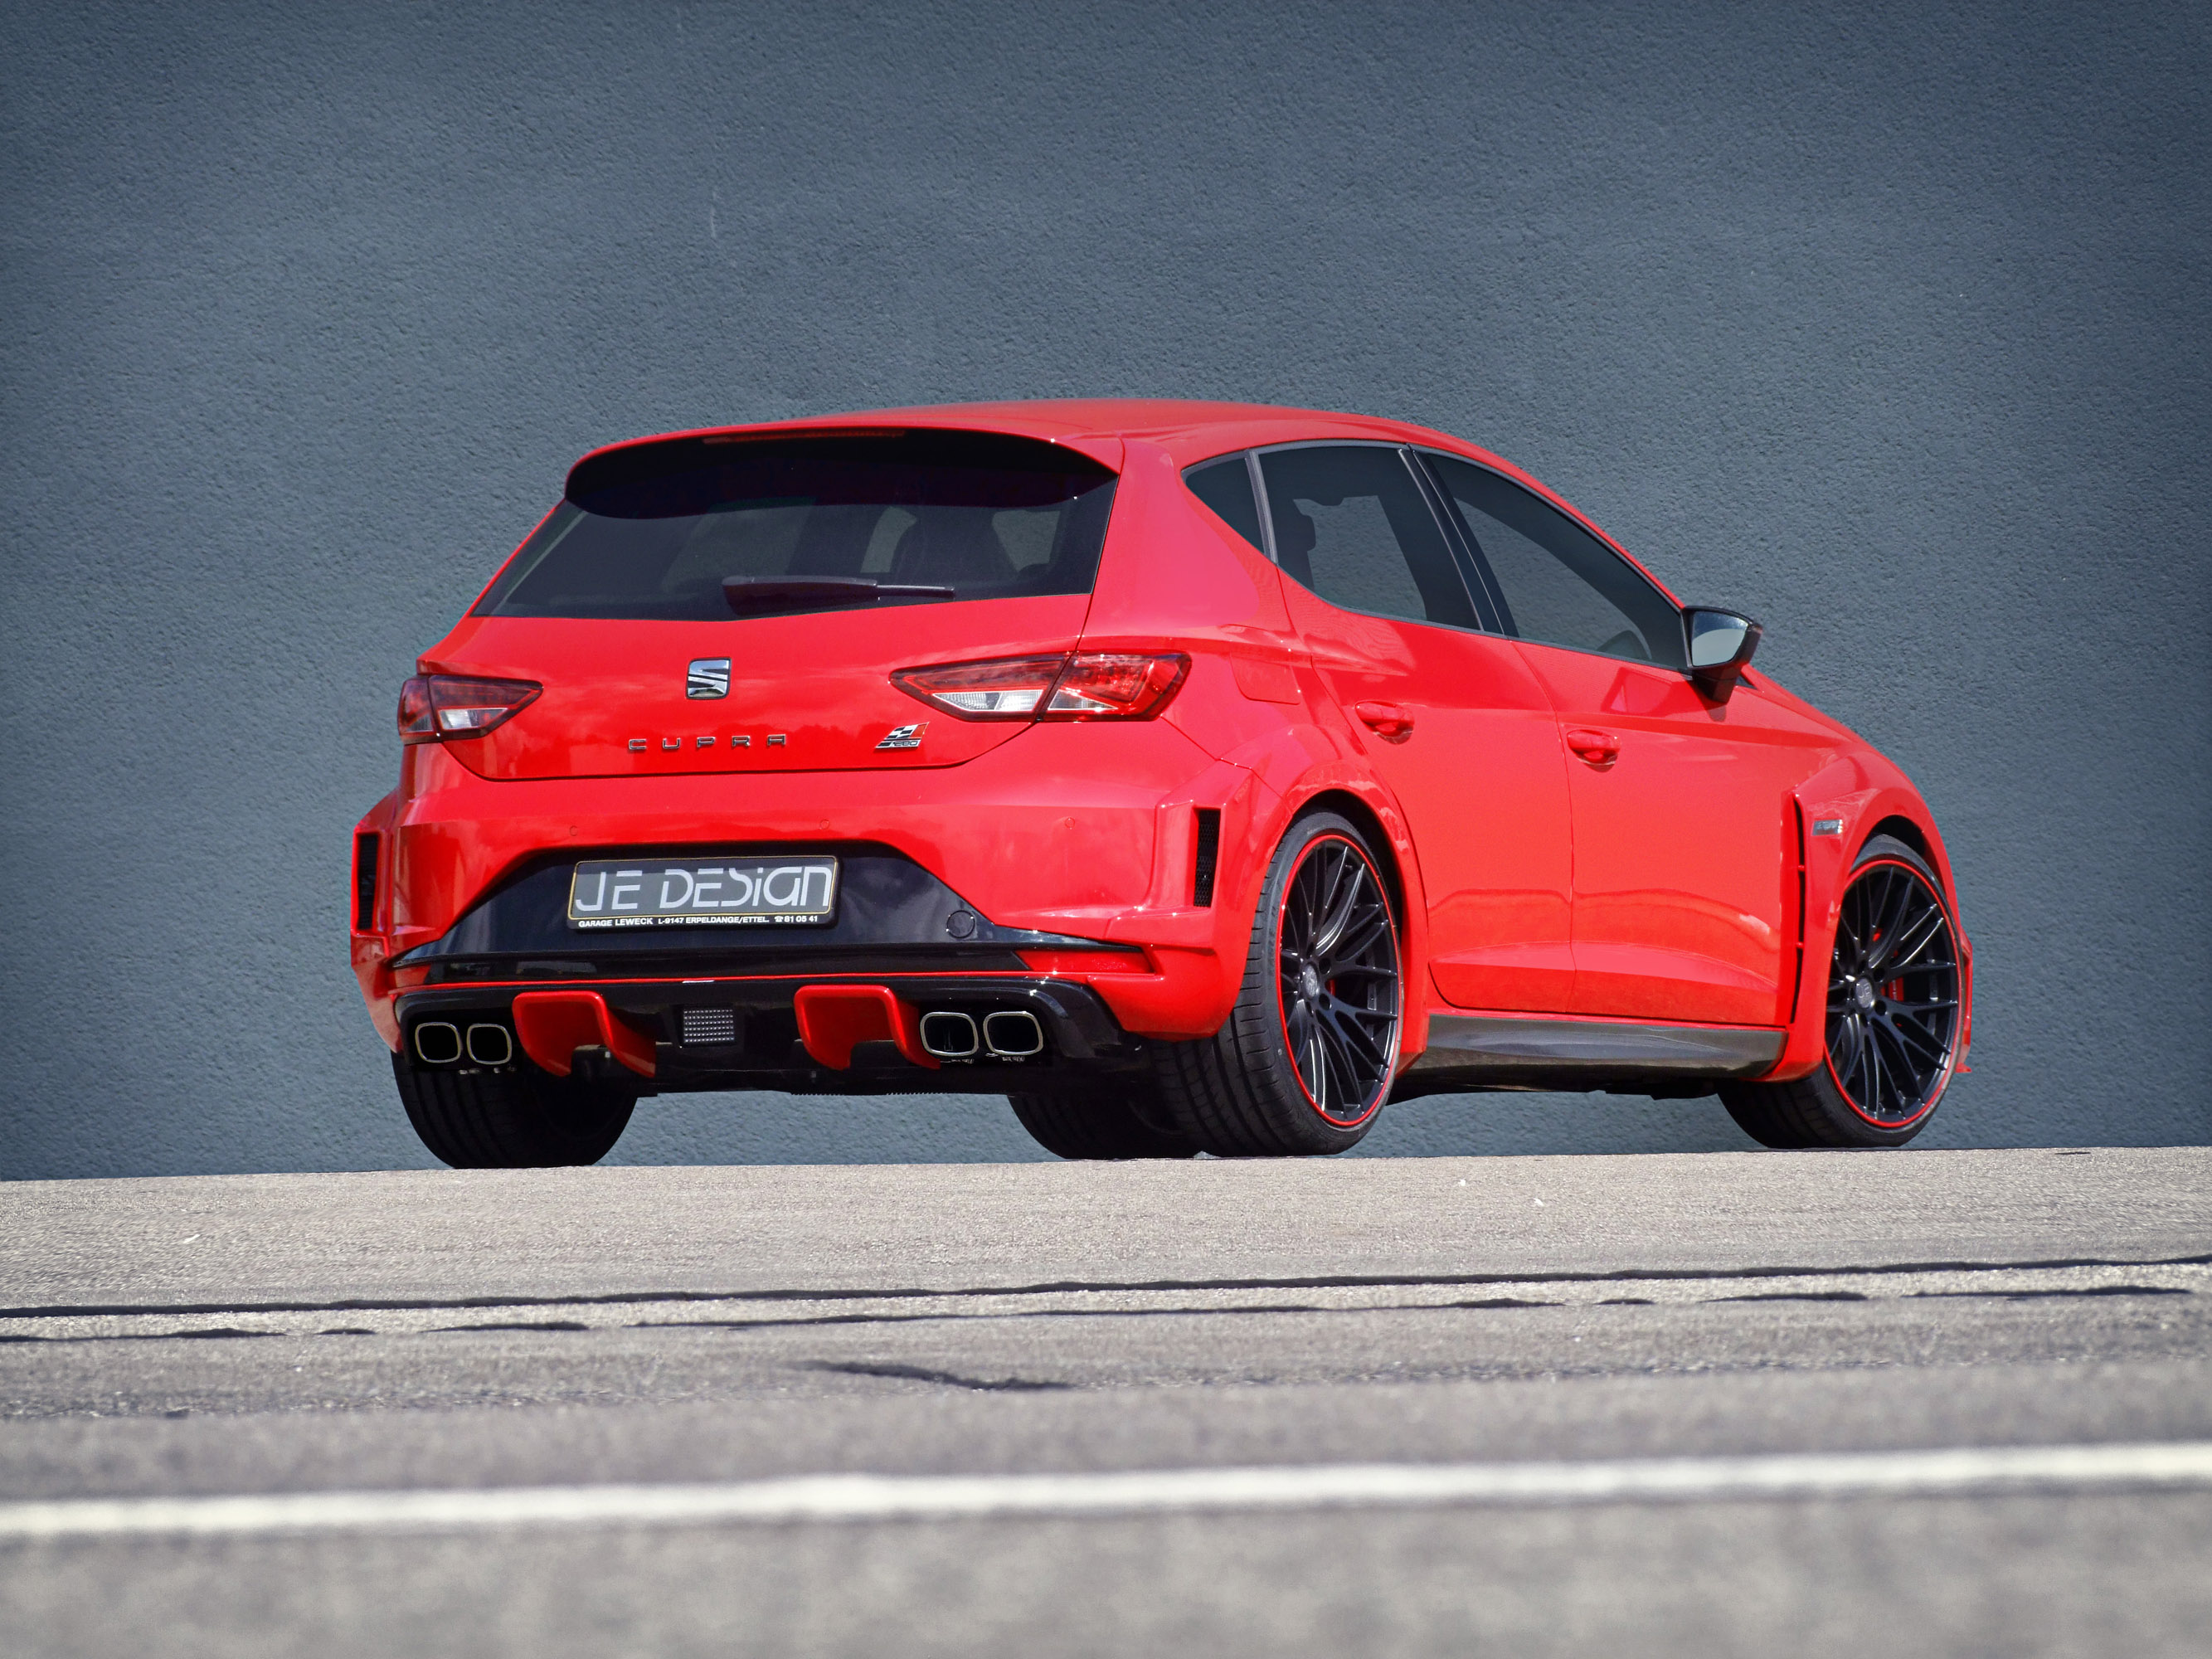 JE Design Presents Their Widebody Kit For The Seat Leon Cupra